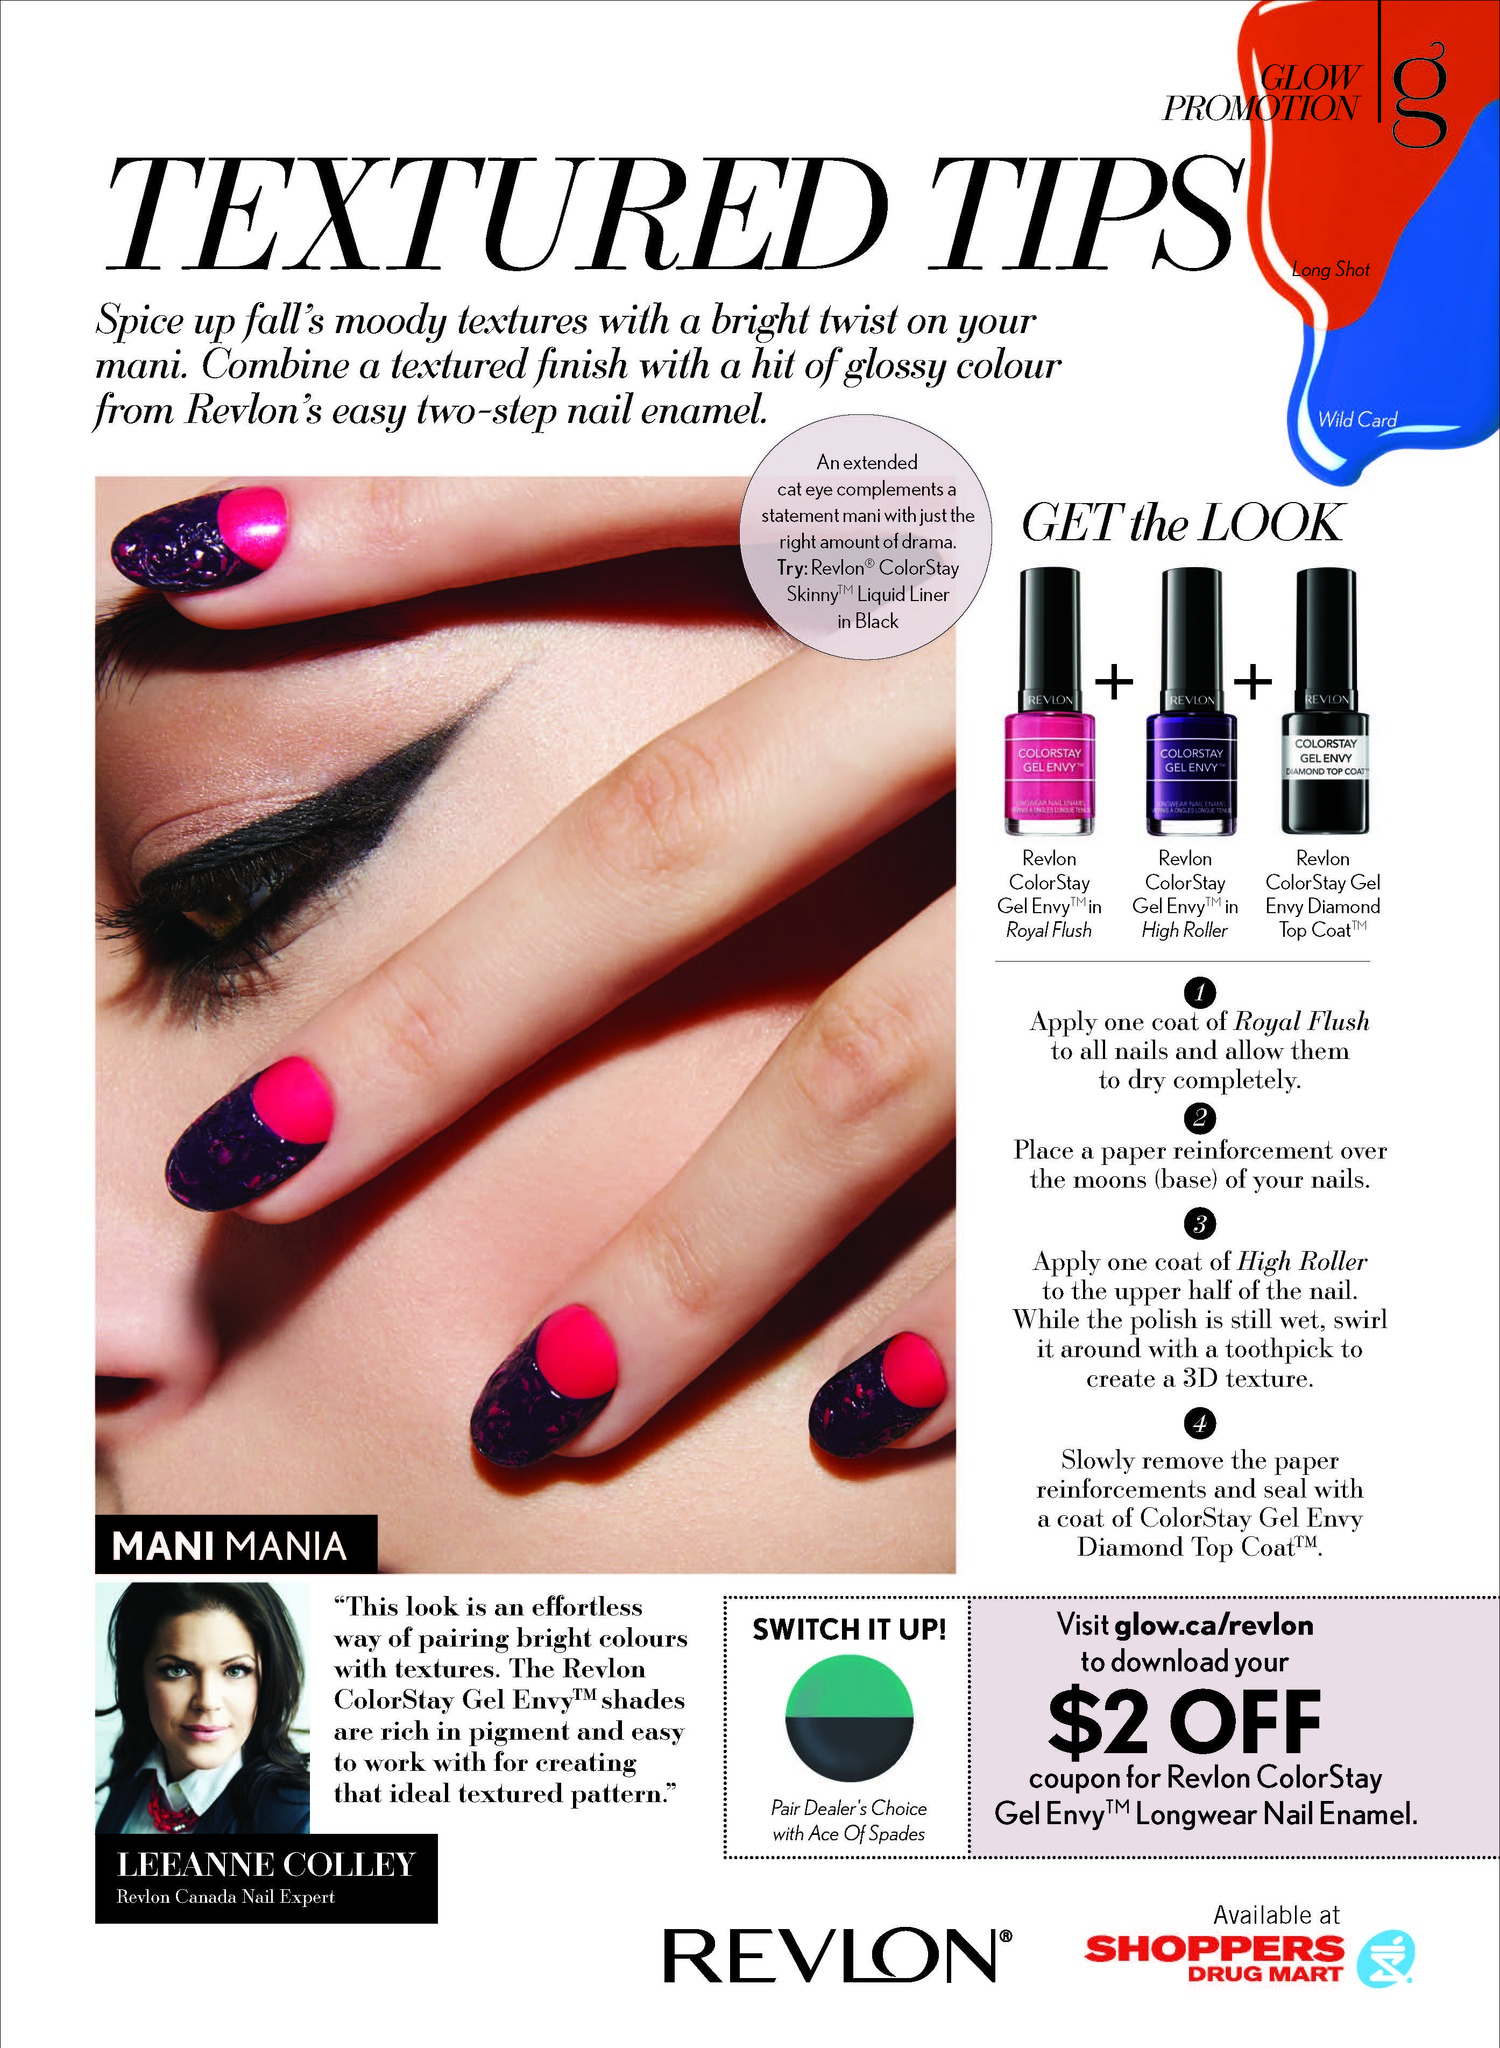 Revlon: Textured Tips